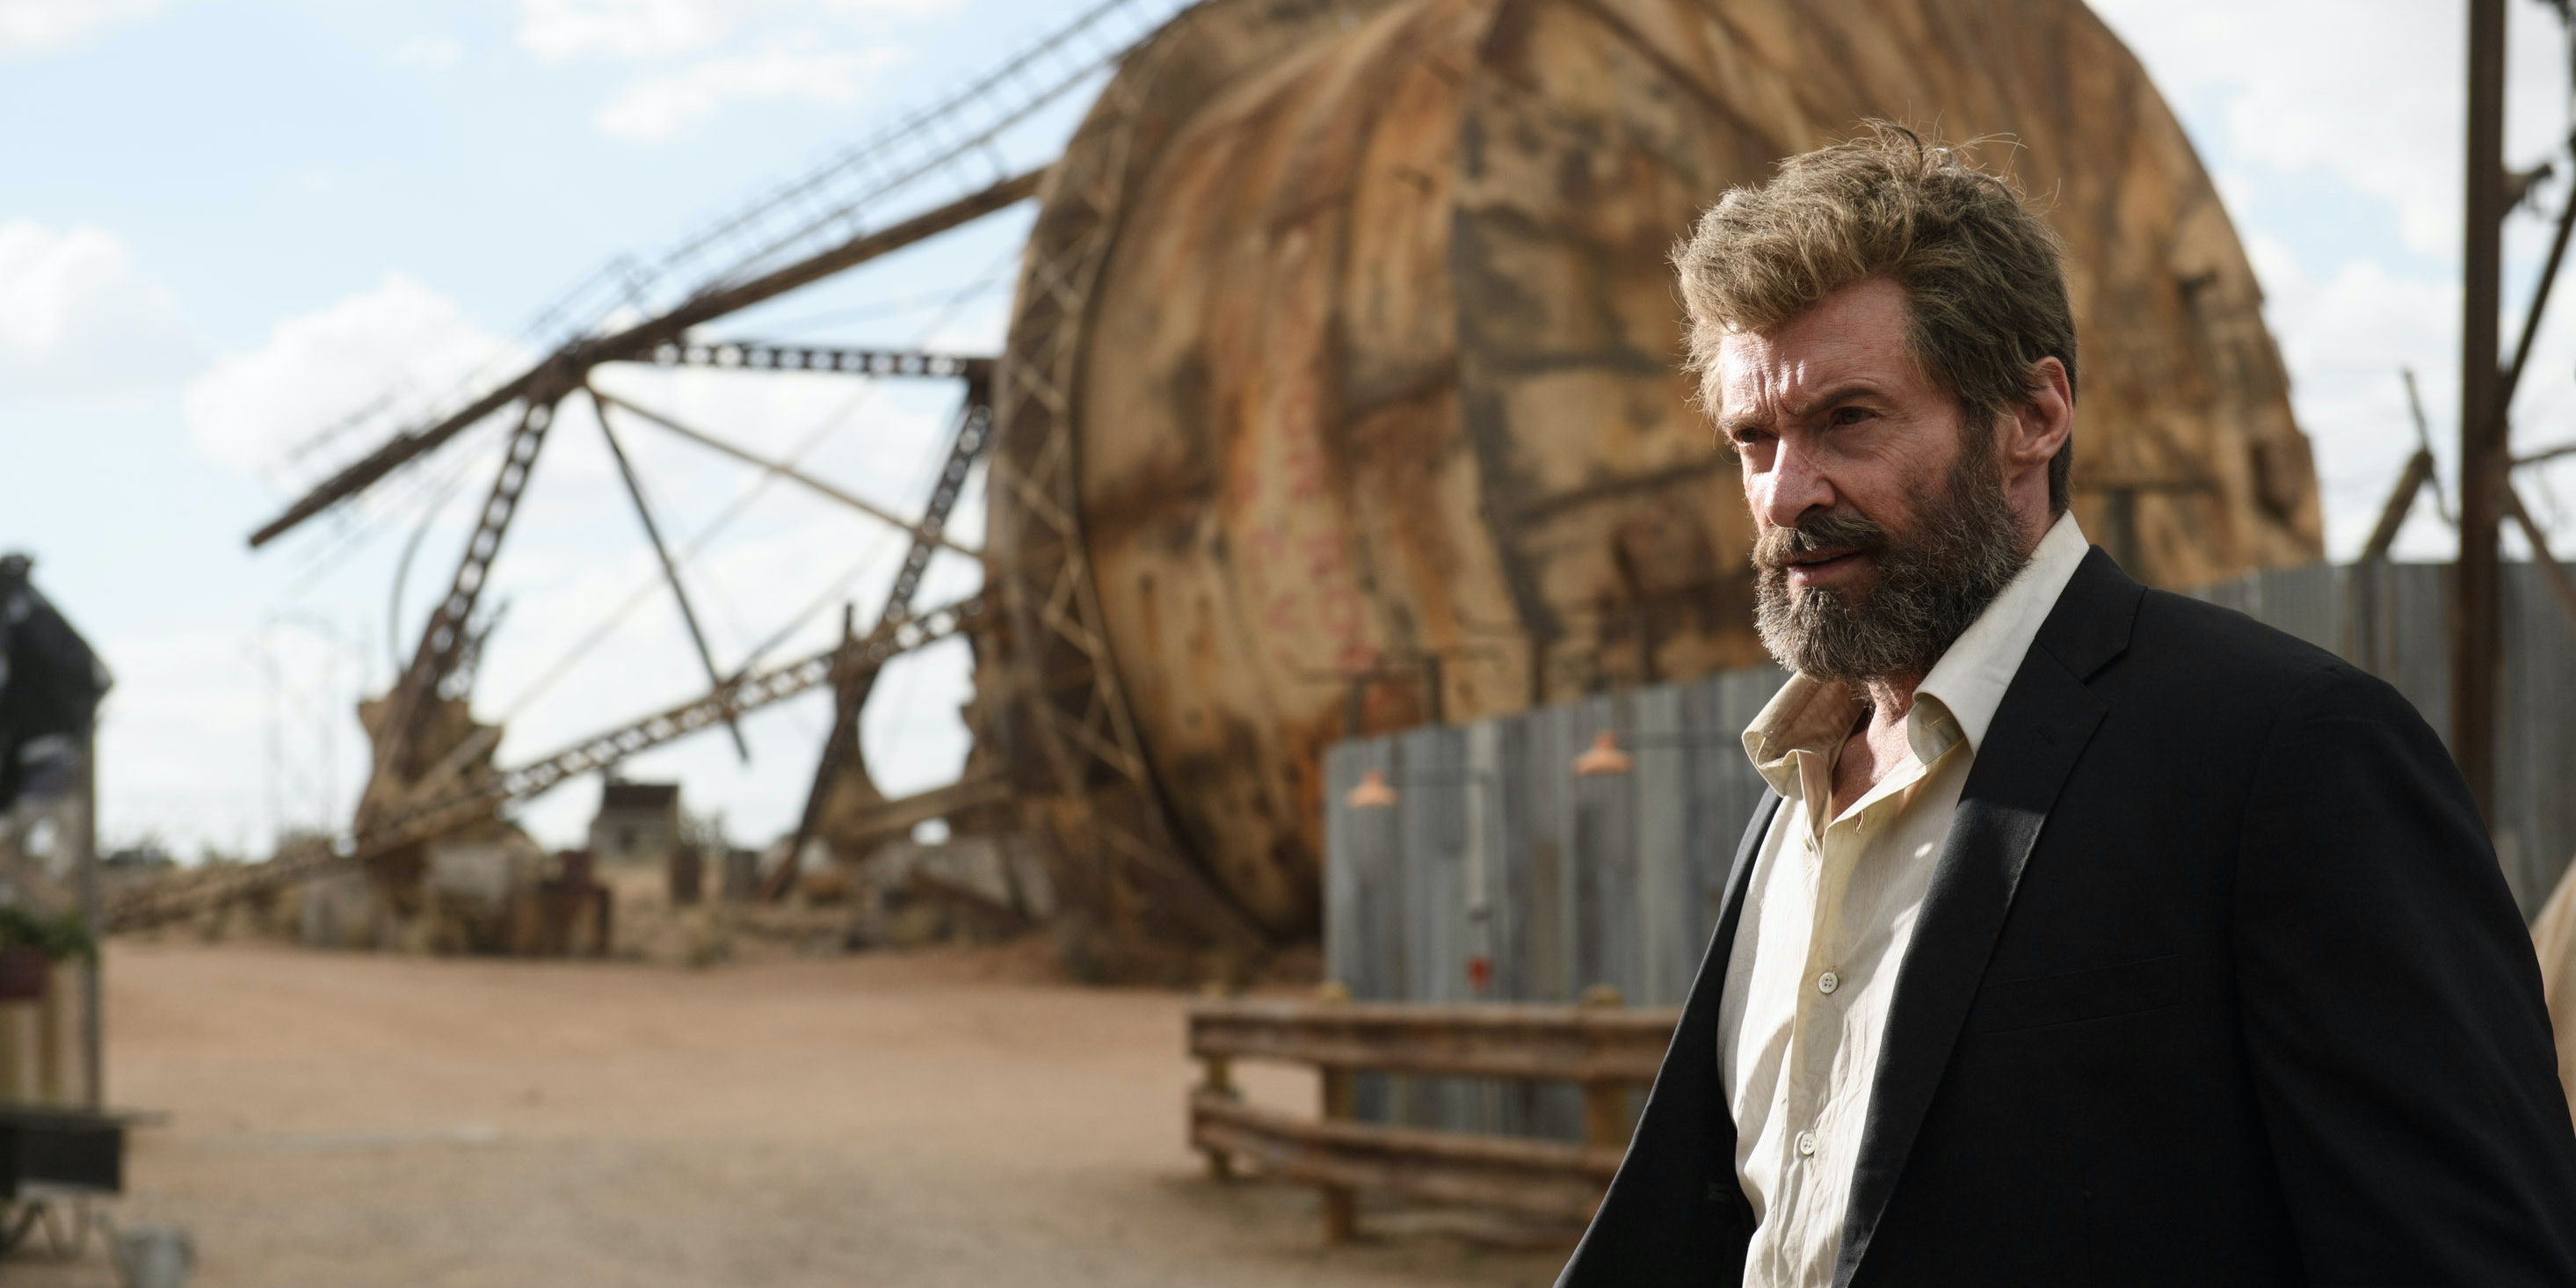 Hugh Jackman as Wolverine in Fox's 'Logan'